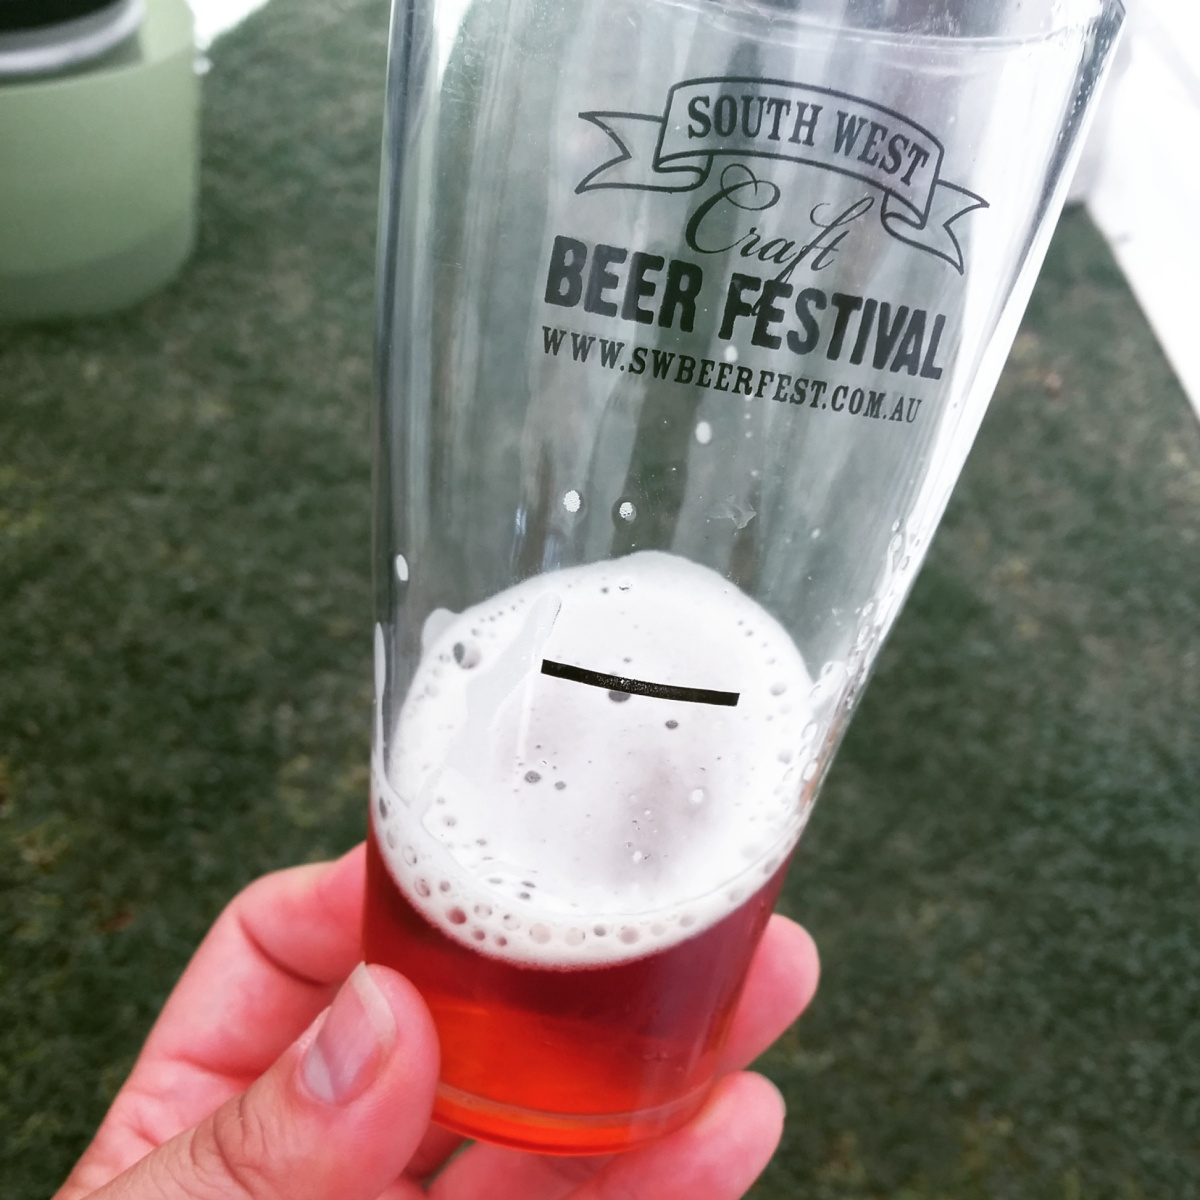 South West Craft Beer Festival2015